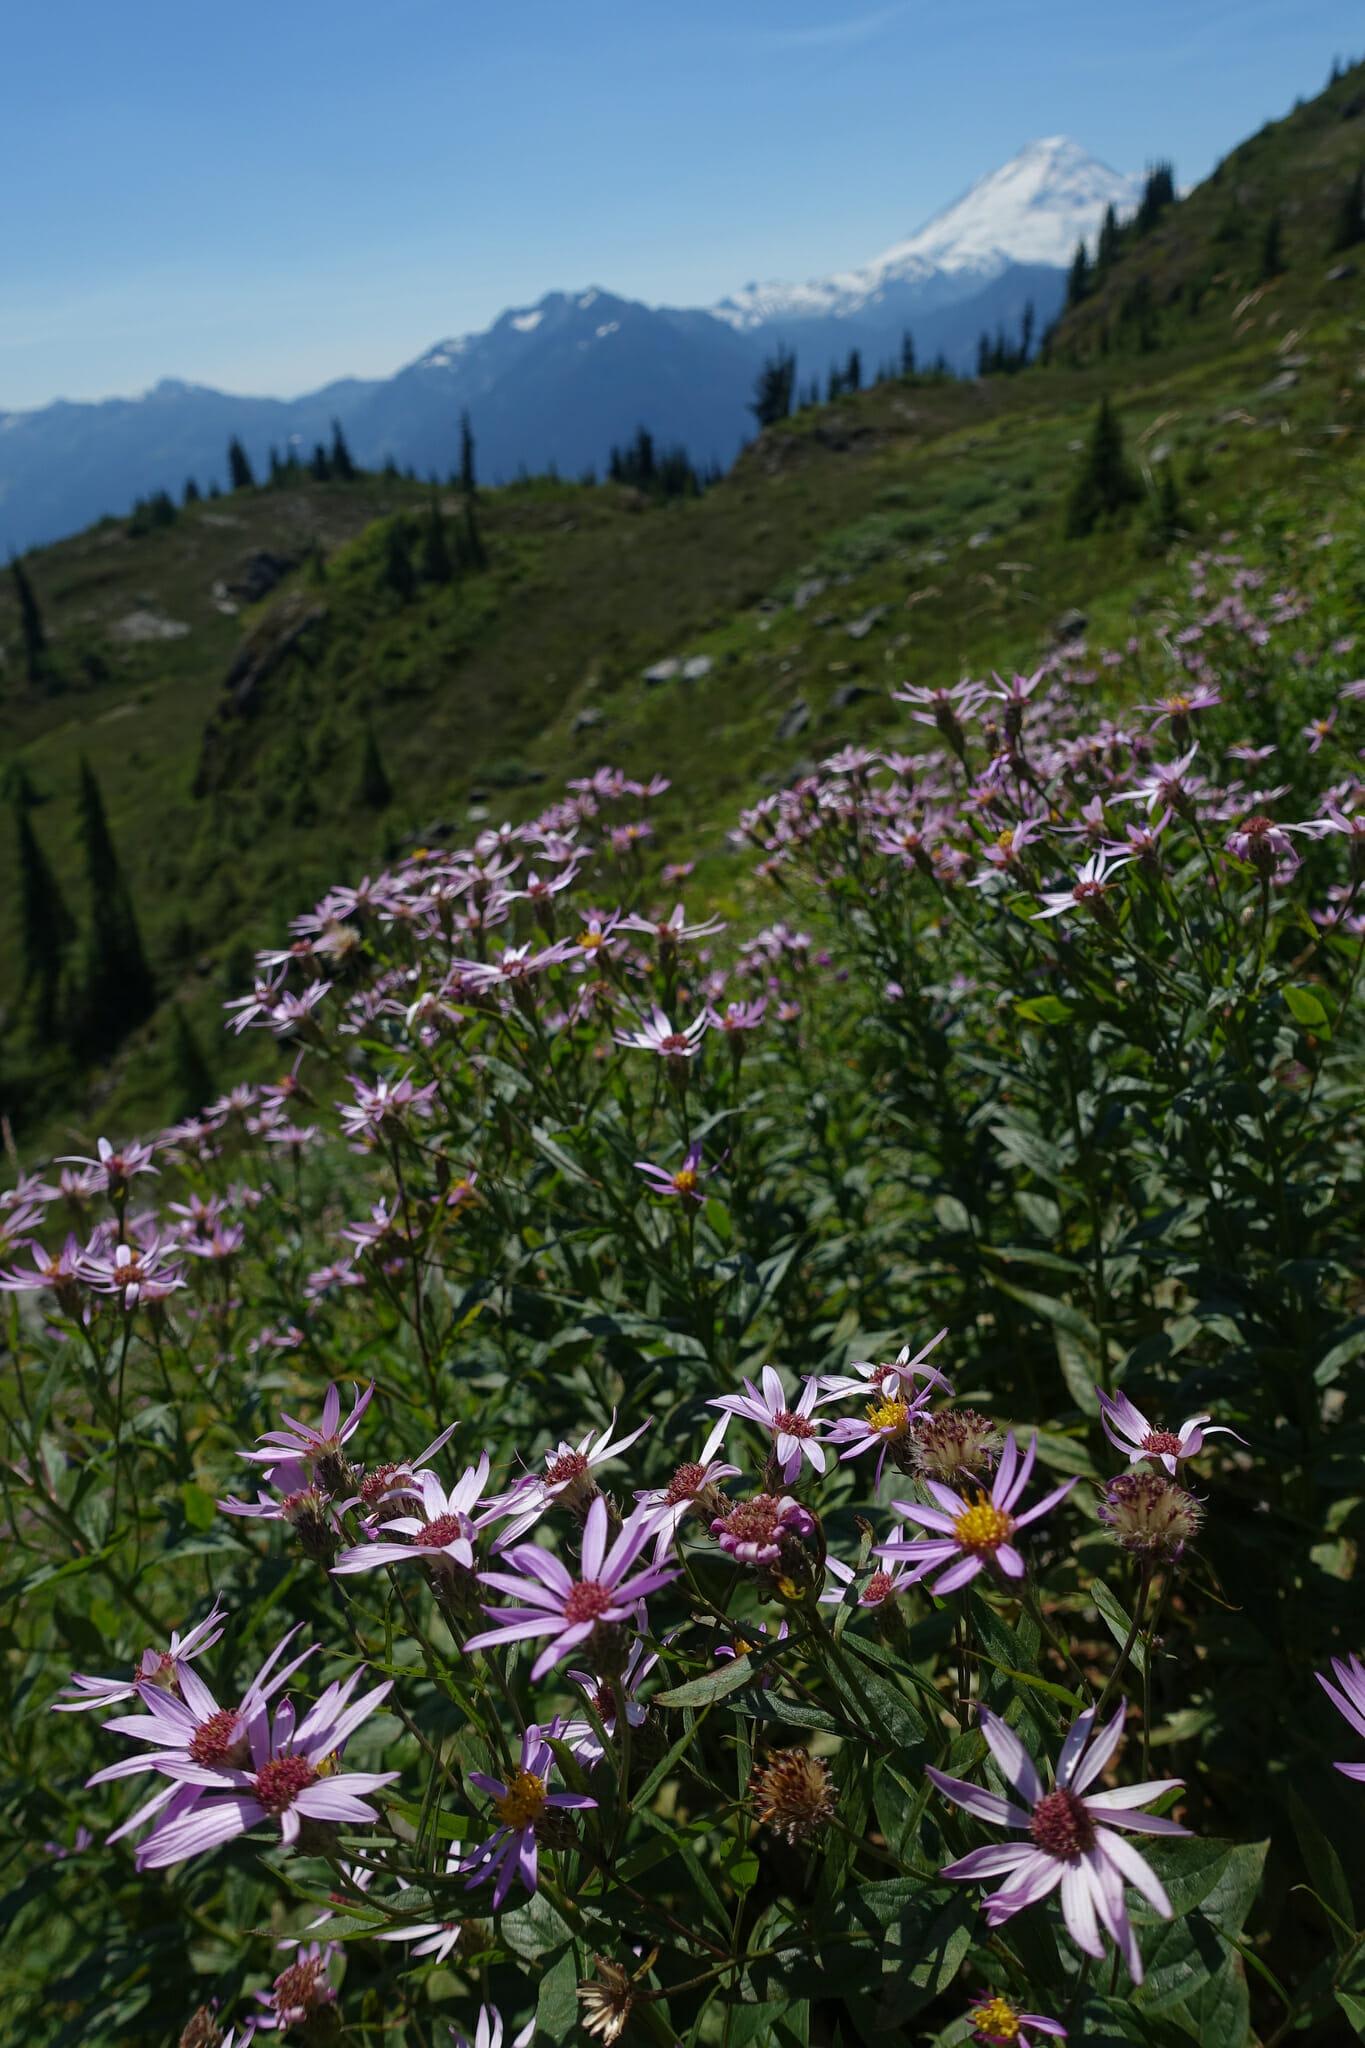 Alpine Aster, with Mount Baker in the background